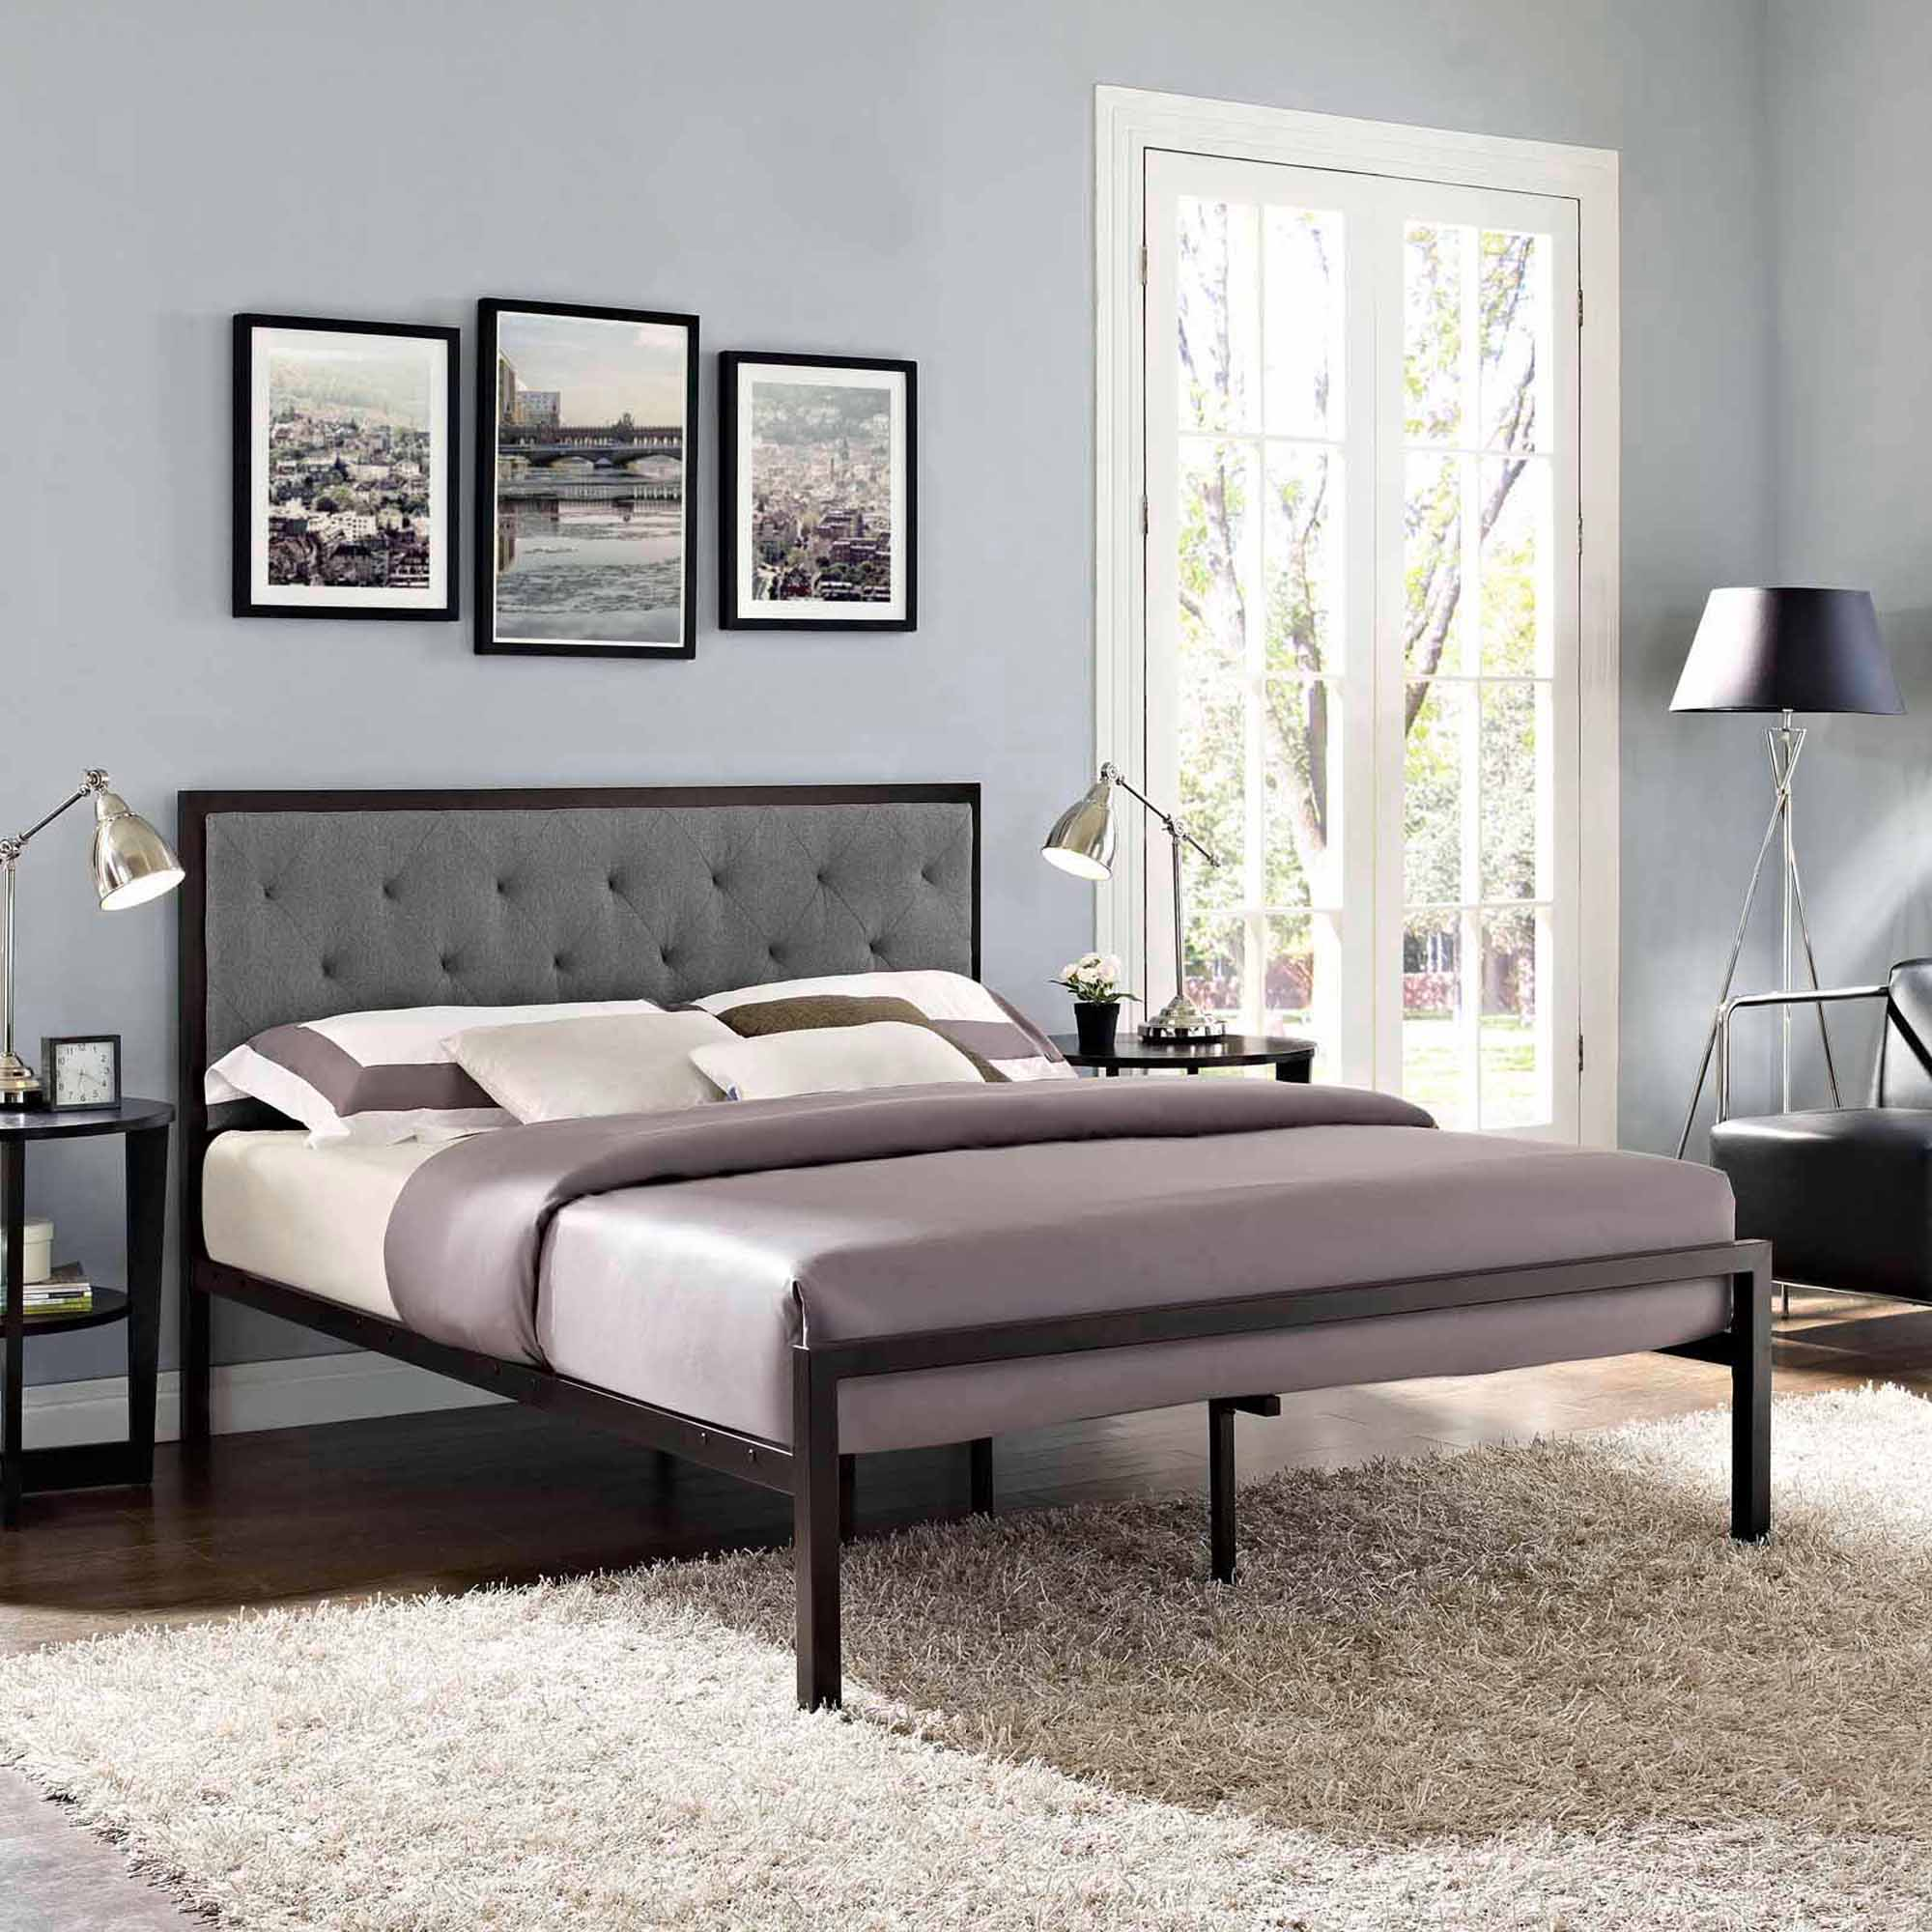 Modway Mia Queen Upholstered Platform Bed, Multiple Colors